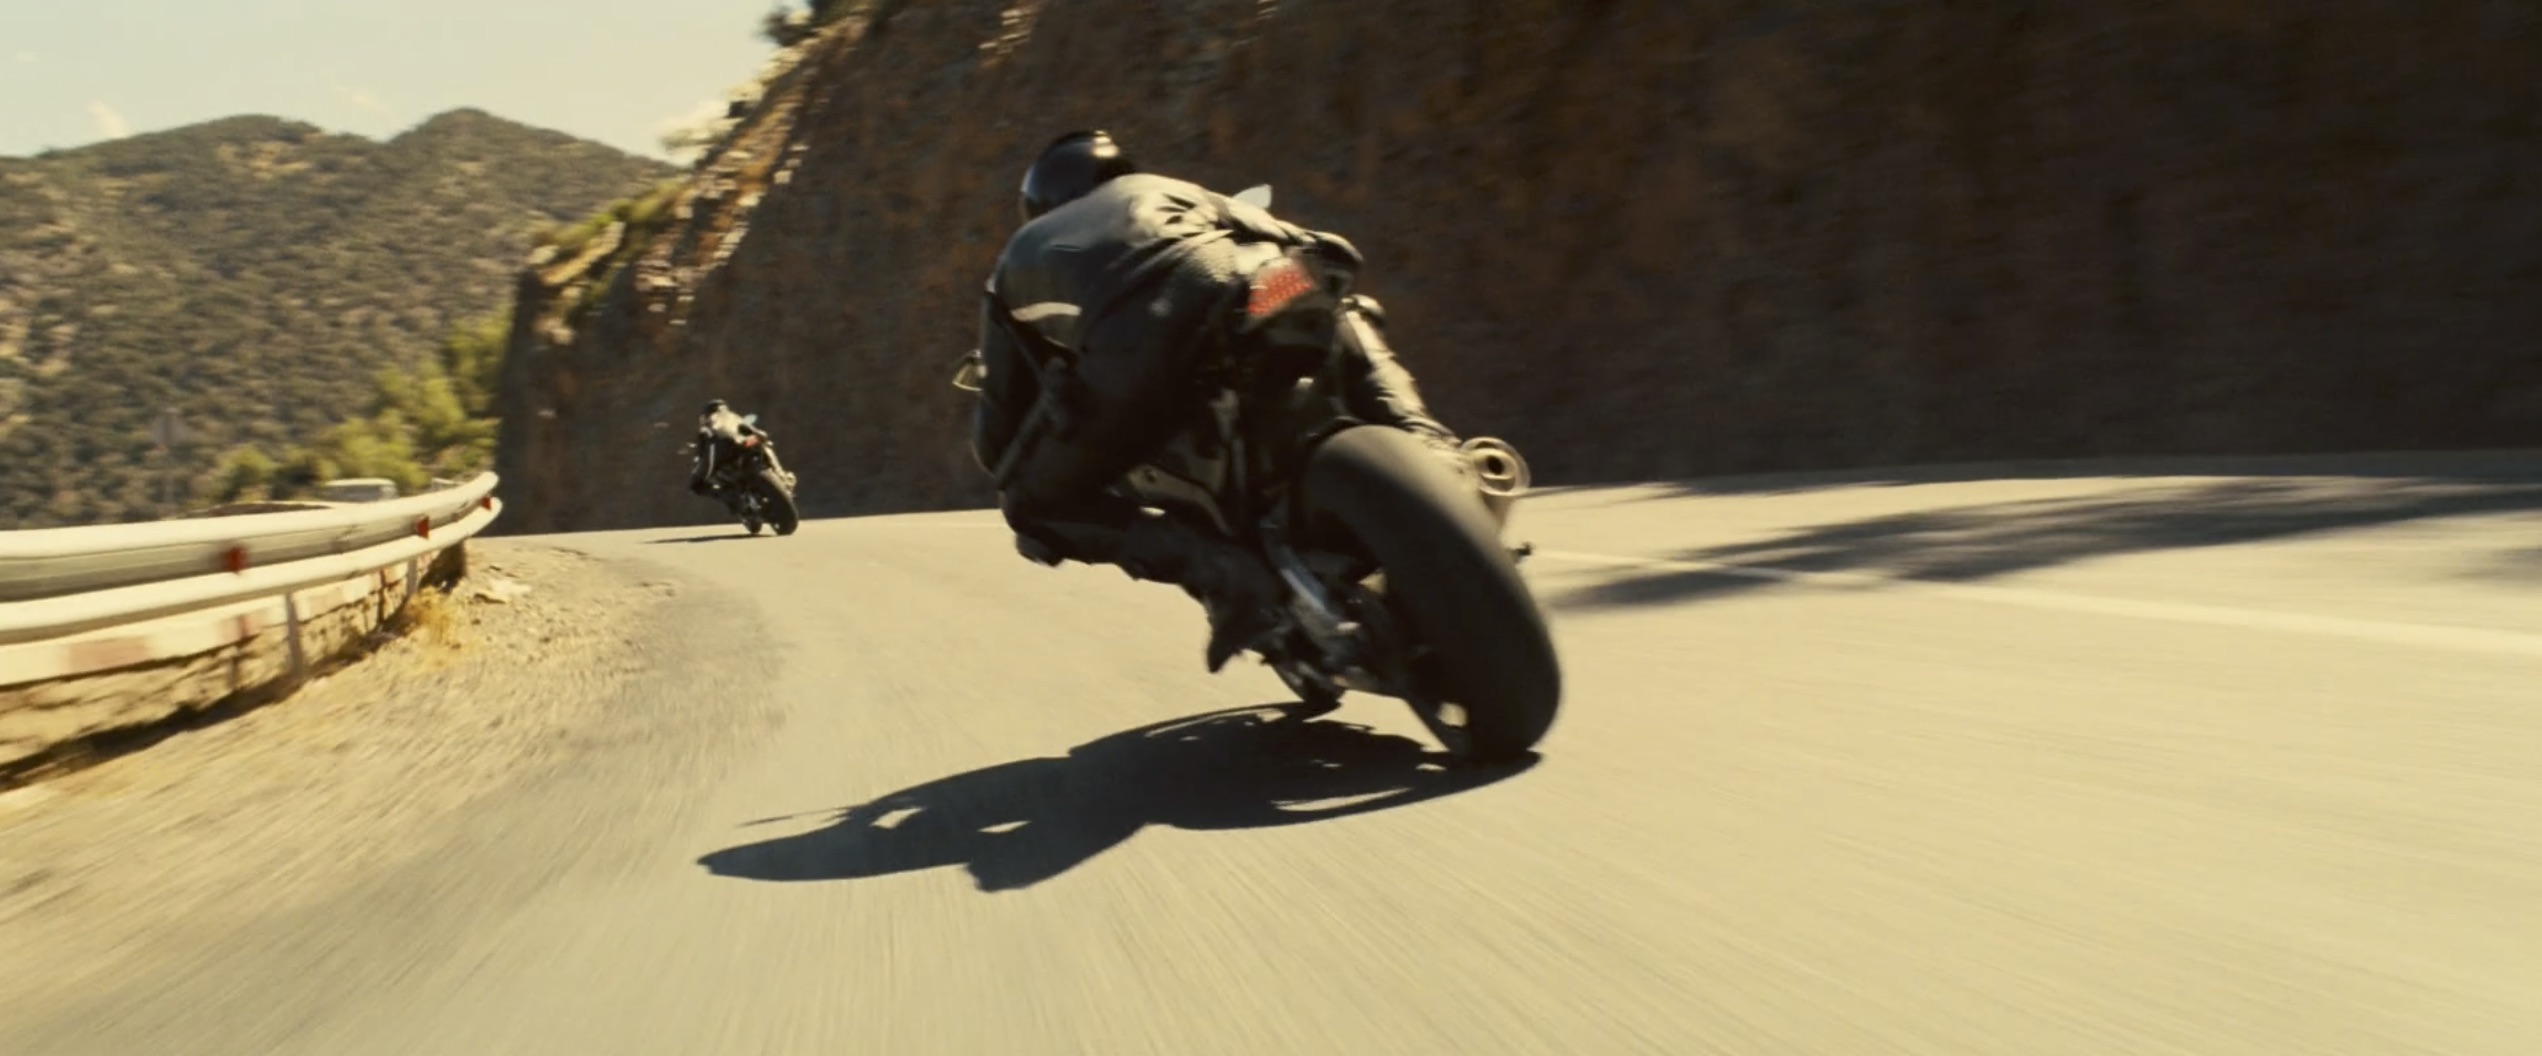 Mission Impossible: Rogue Nation bike chase on canyon road